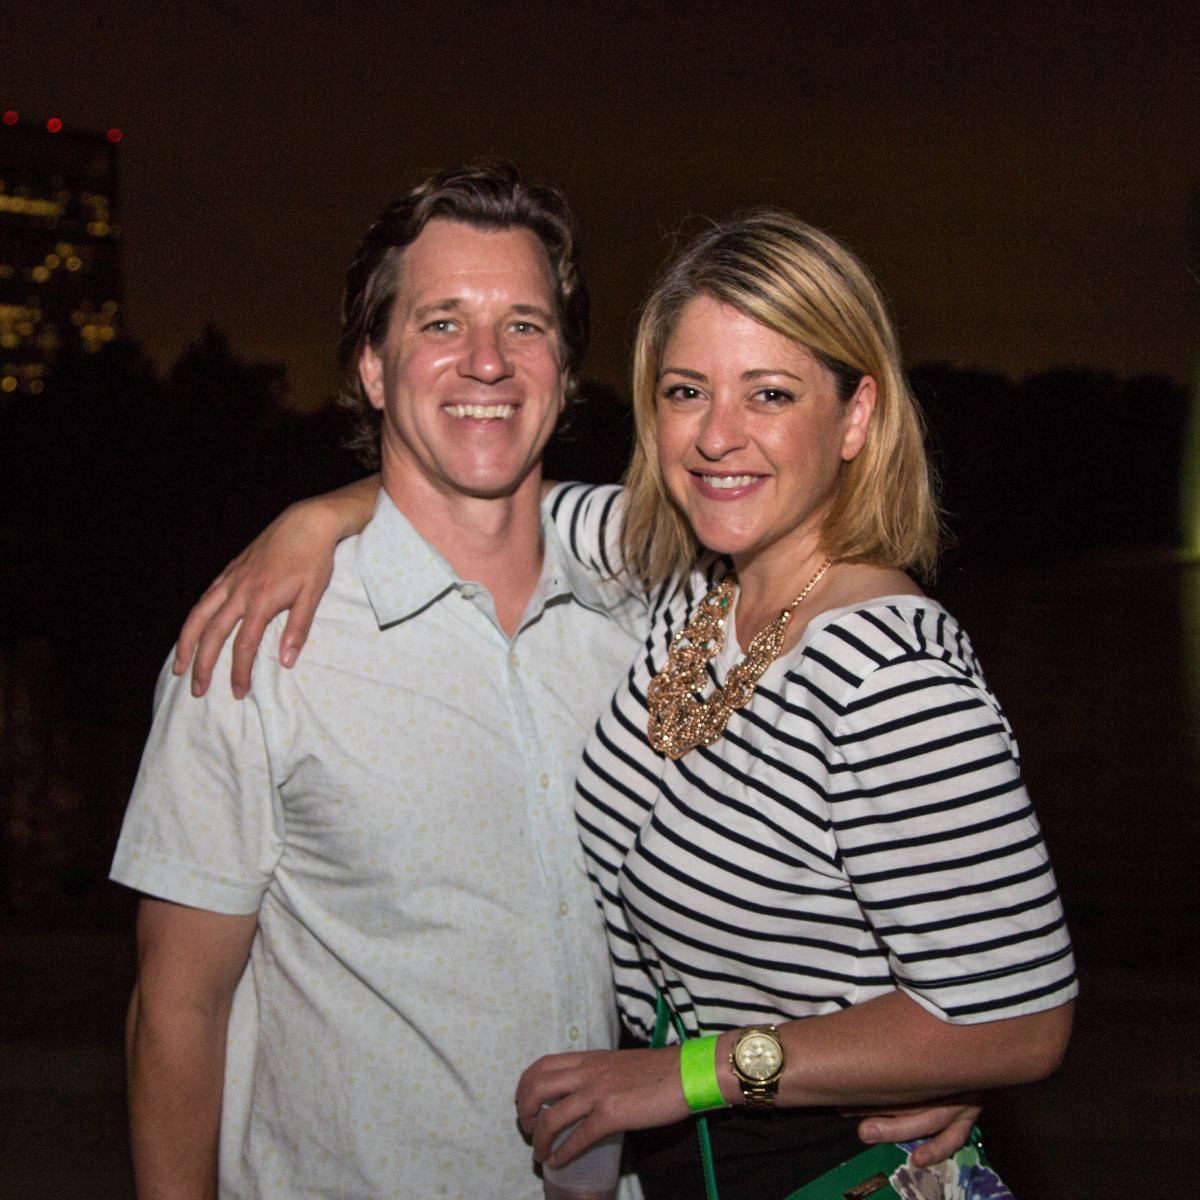 Urban Green Overboard party, Andrew Borches, Adrienne Saxe